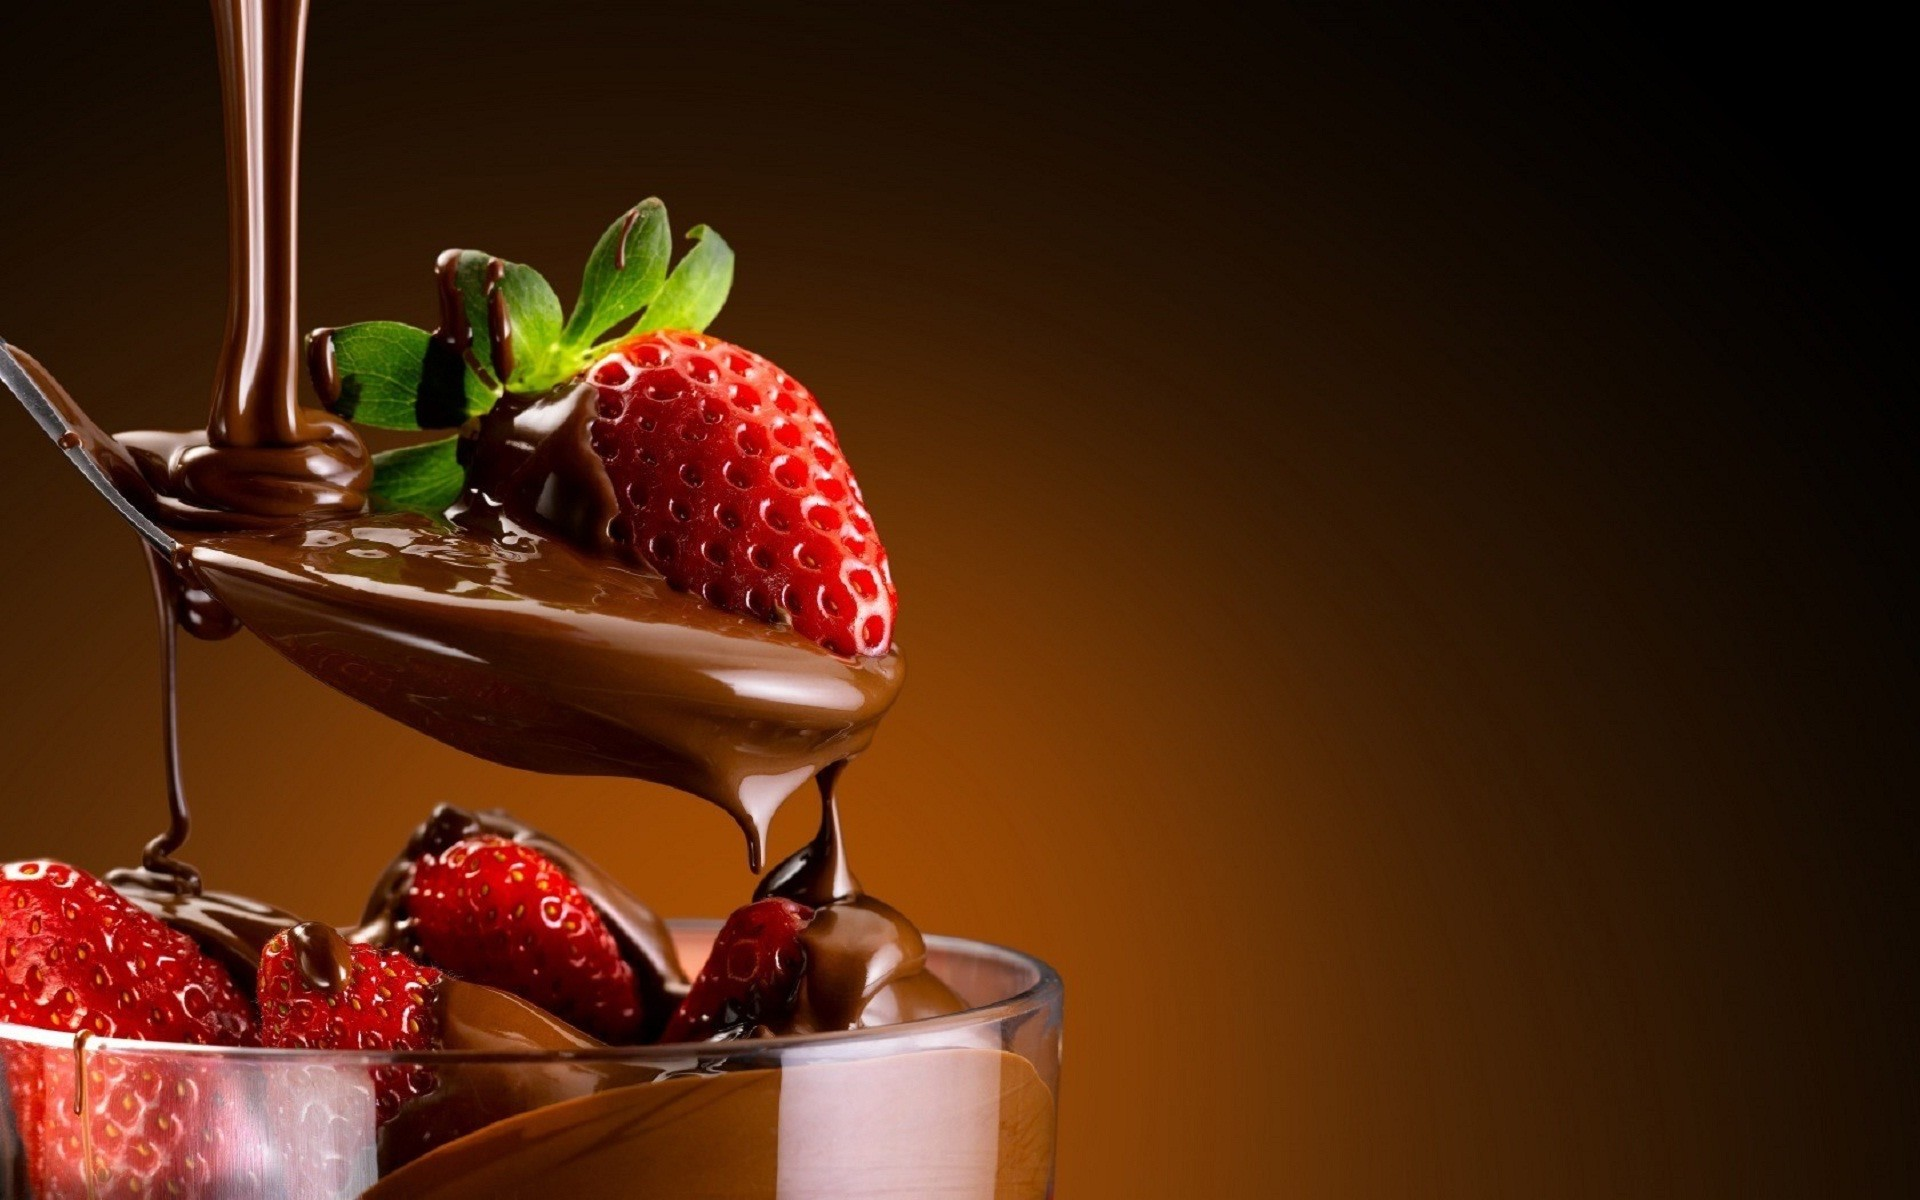 1920x1200 Good morning strawberry chocolate sweet wallpaper